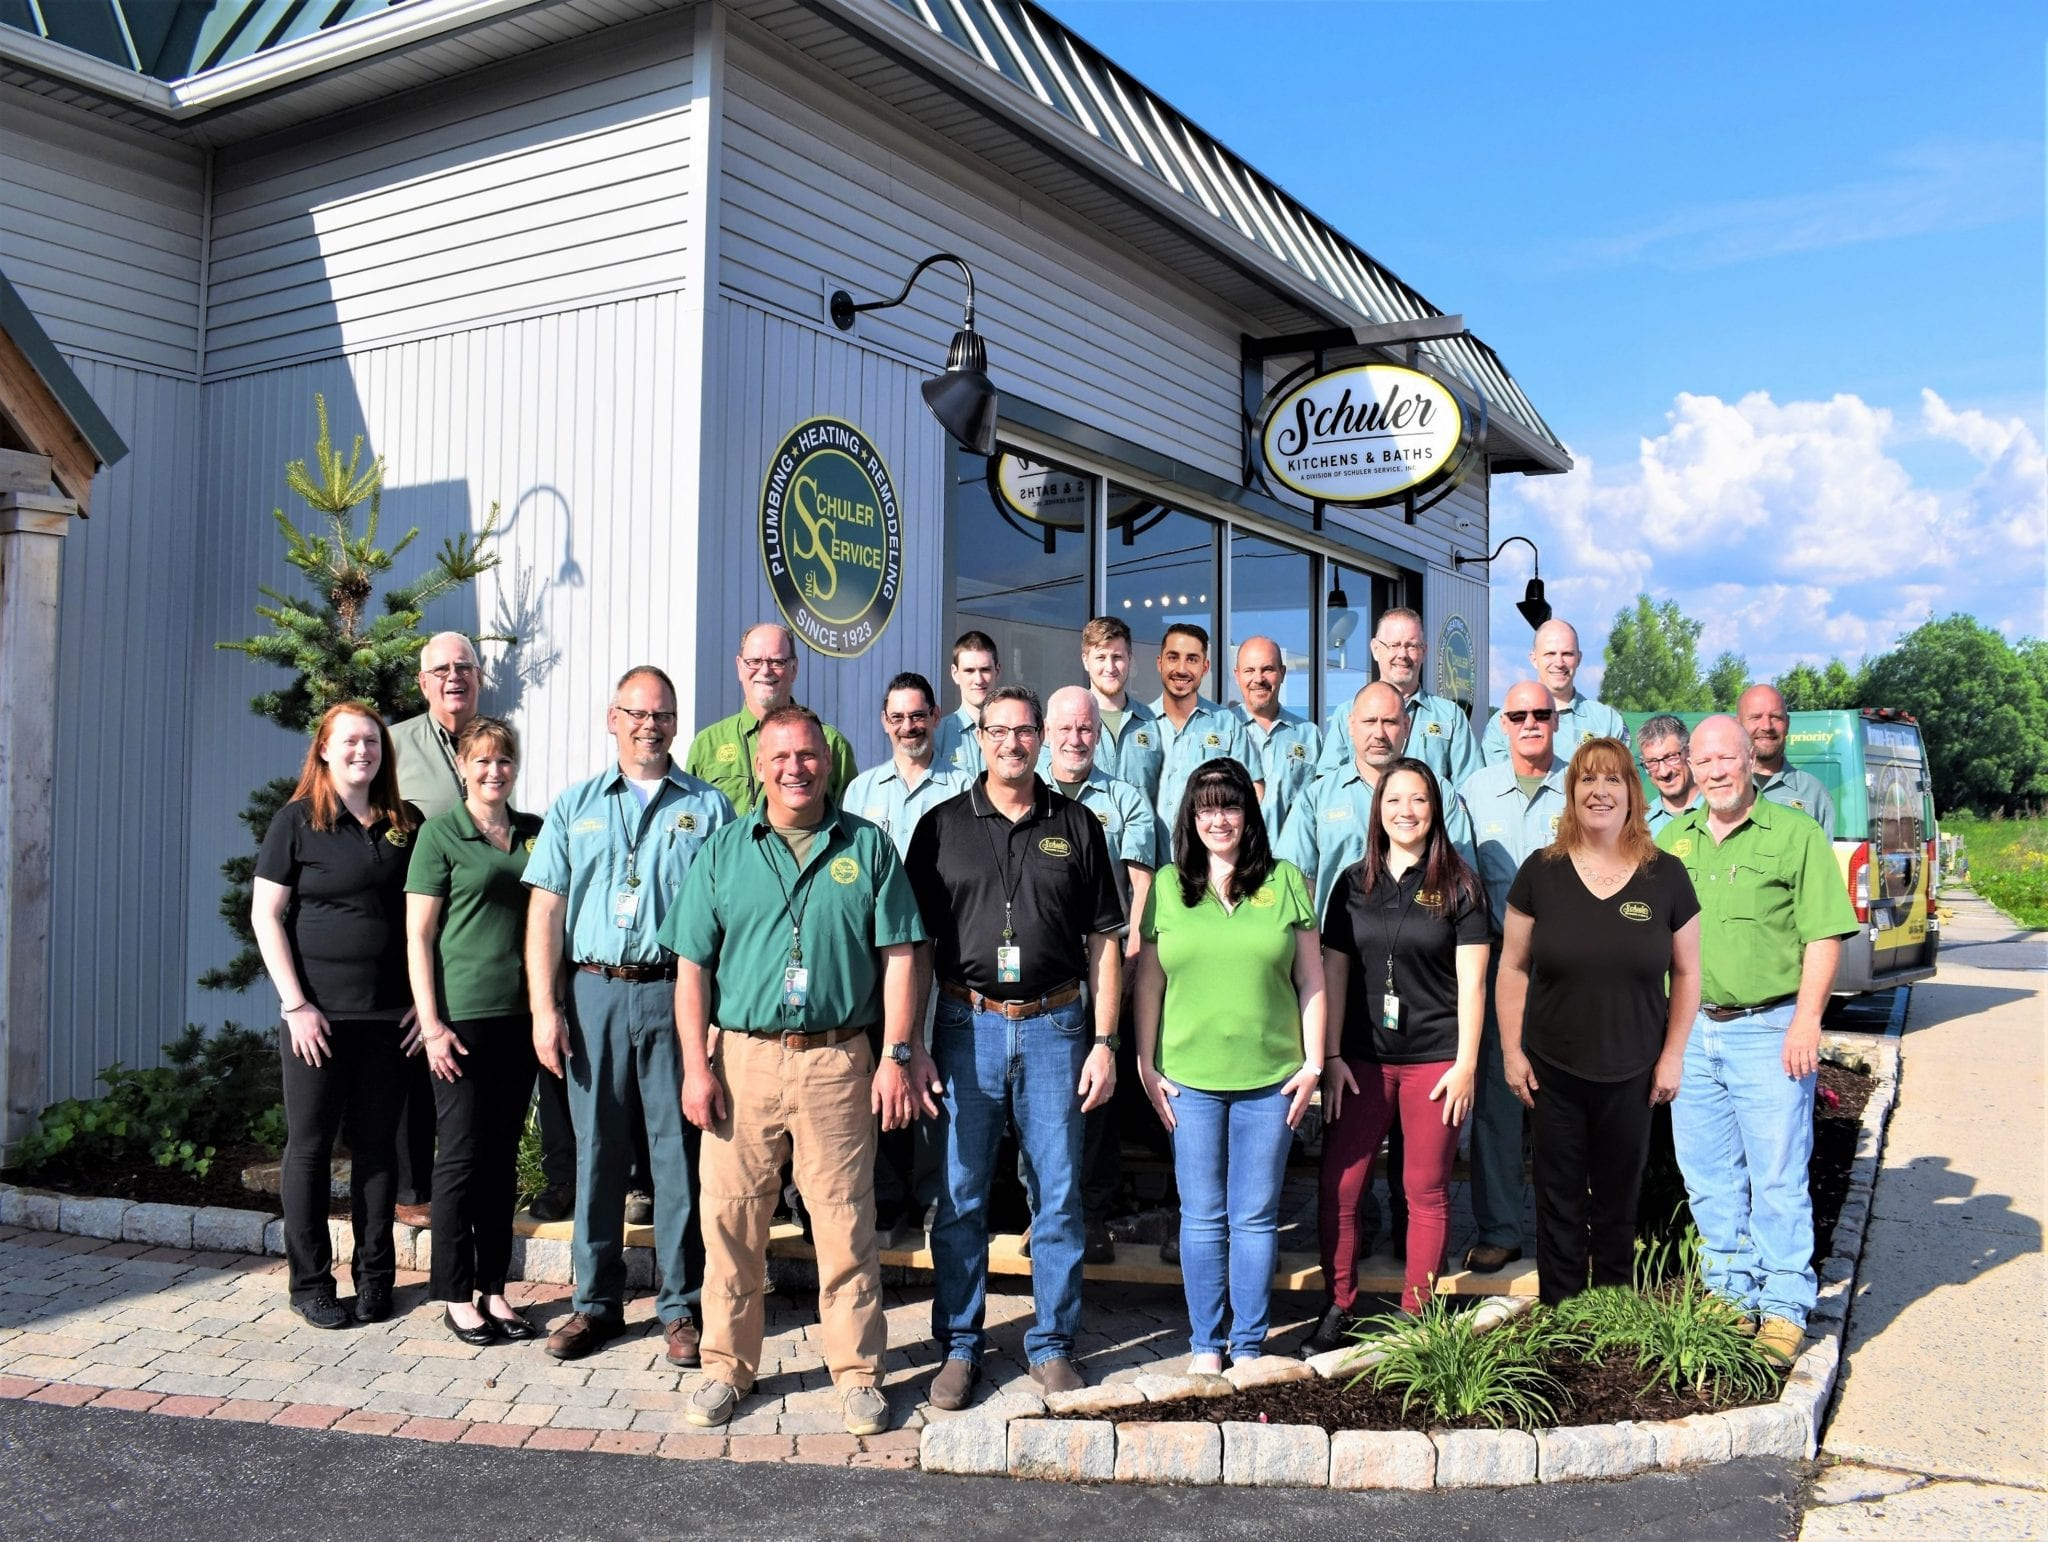 schuler service team photo from october 2019